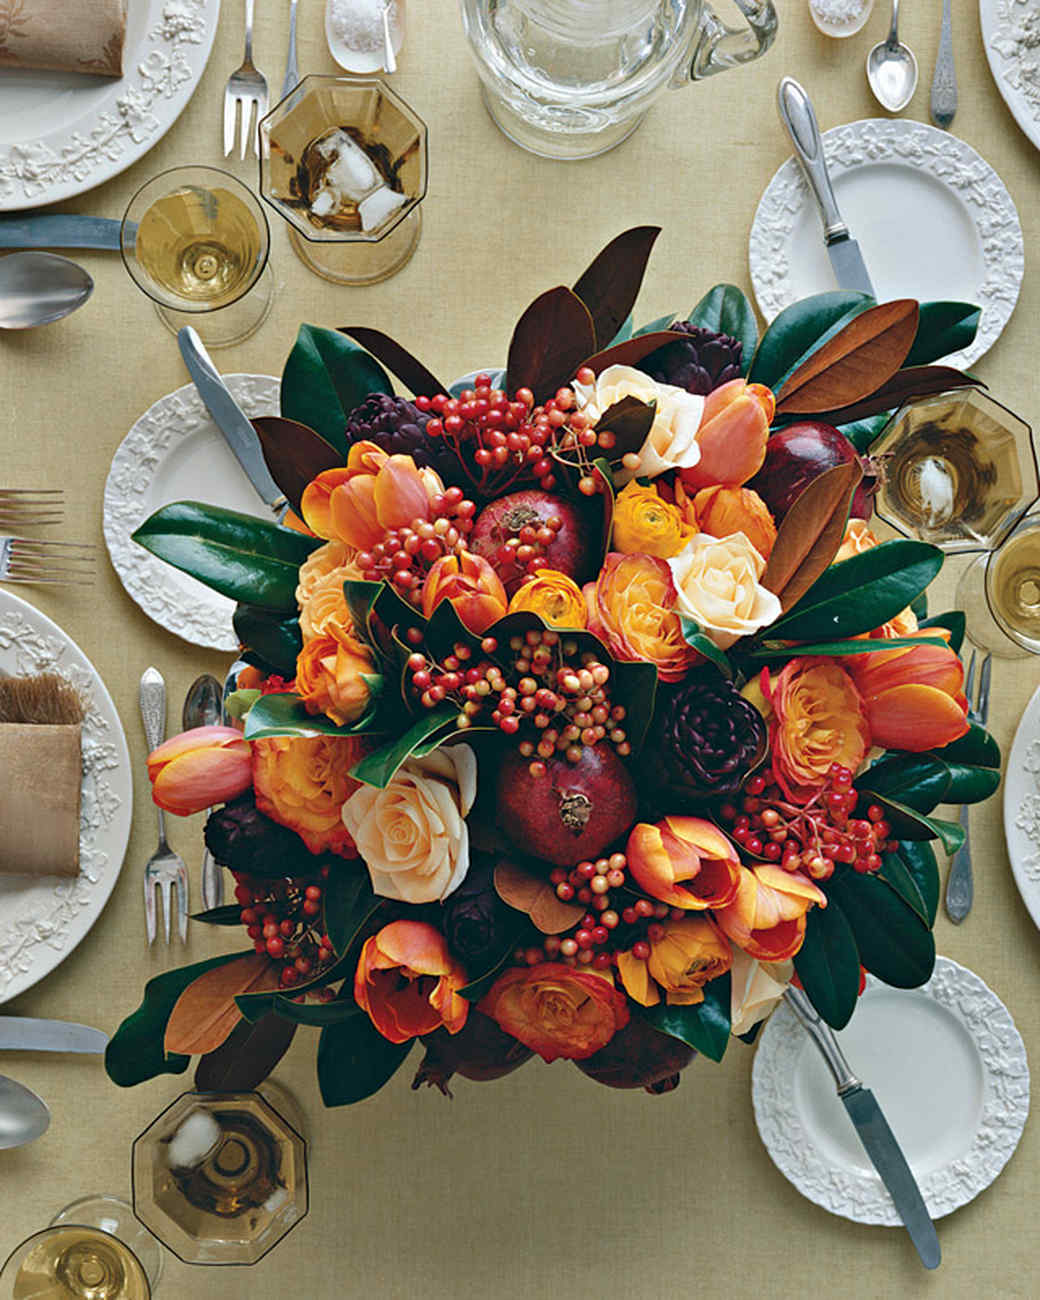 Thanksgiving Centerpiece with Pomegranates, Tulips, and Roses